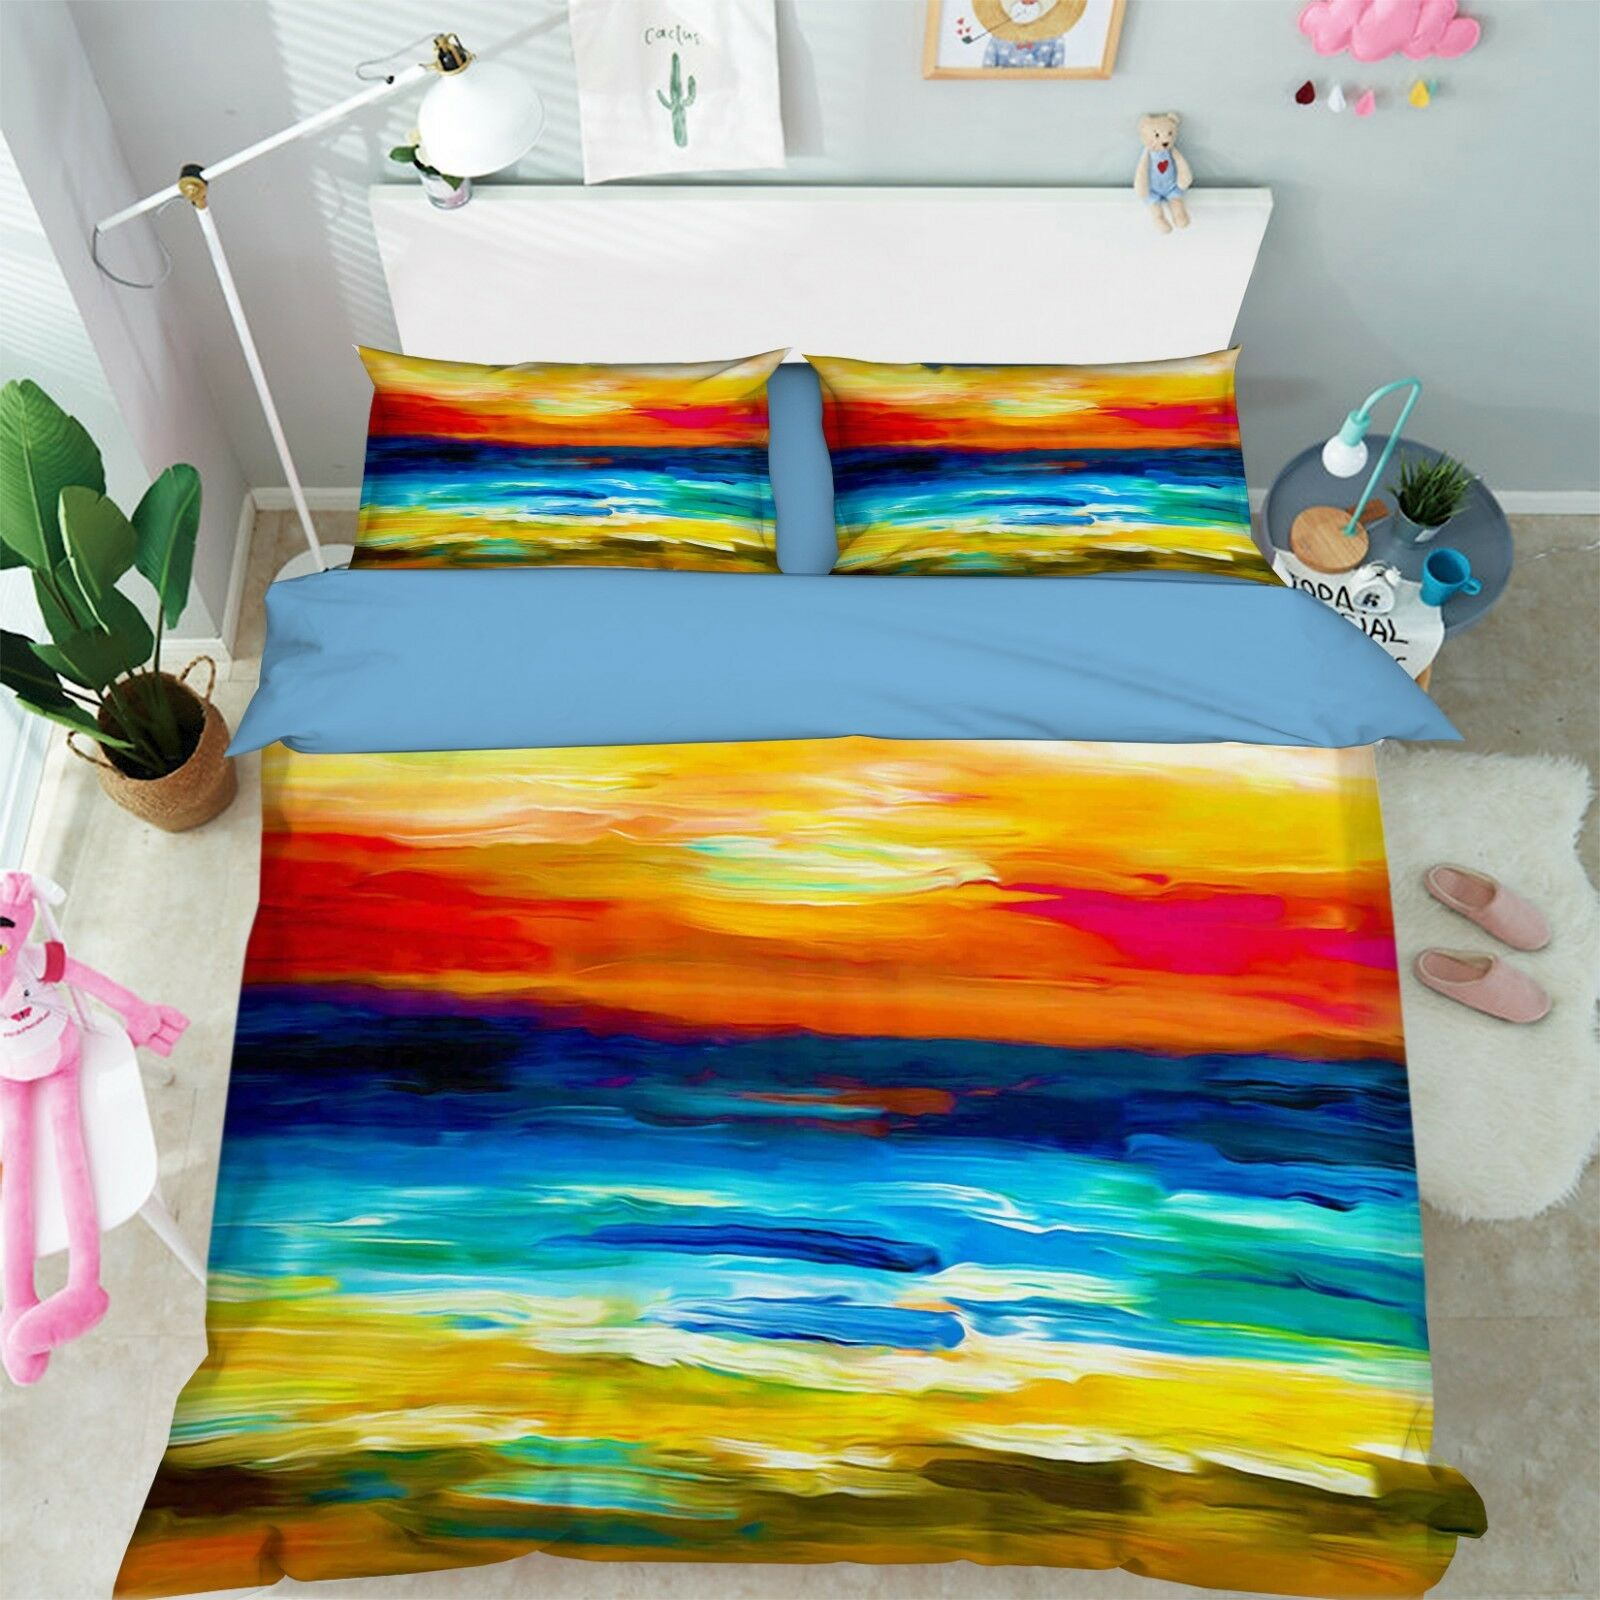 3D Oil Painting Sea 7 Bed Pillowcases Quilt Duvet Cover Set Single Queen King CA